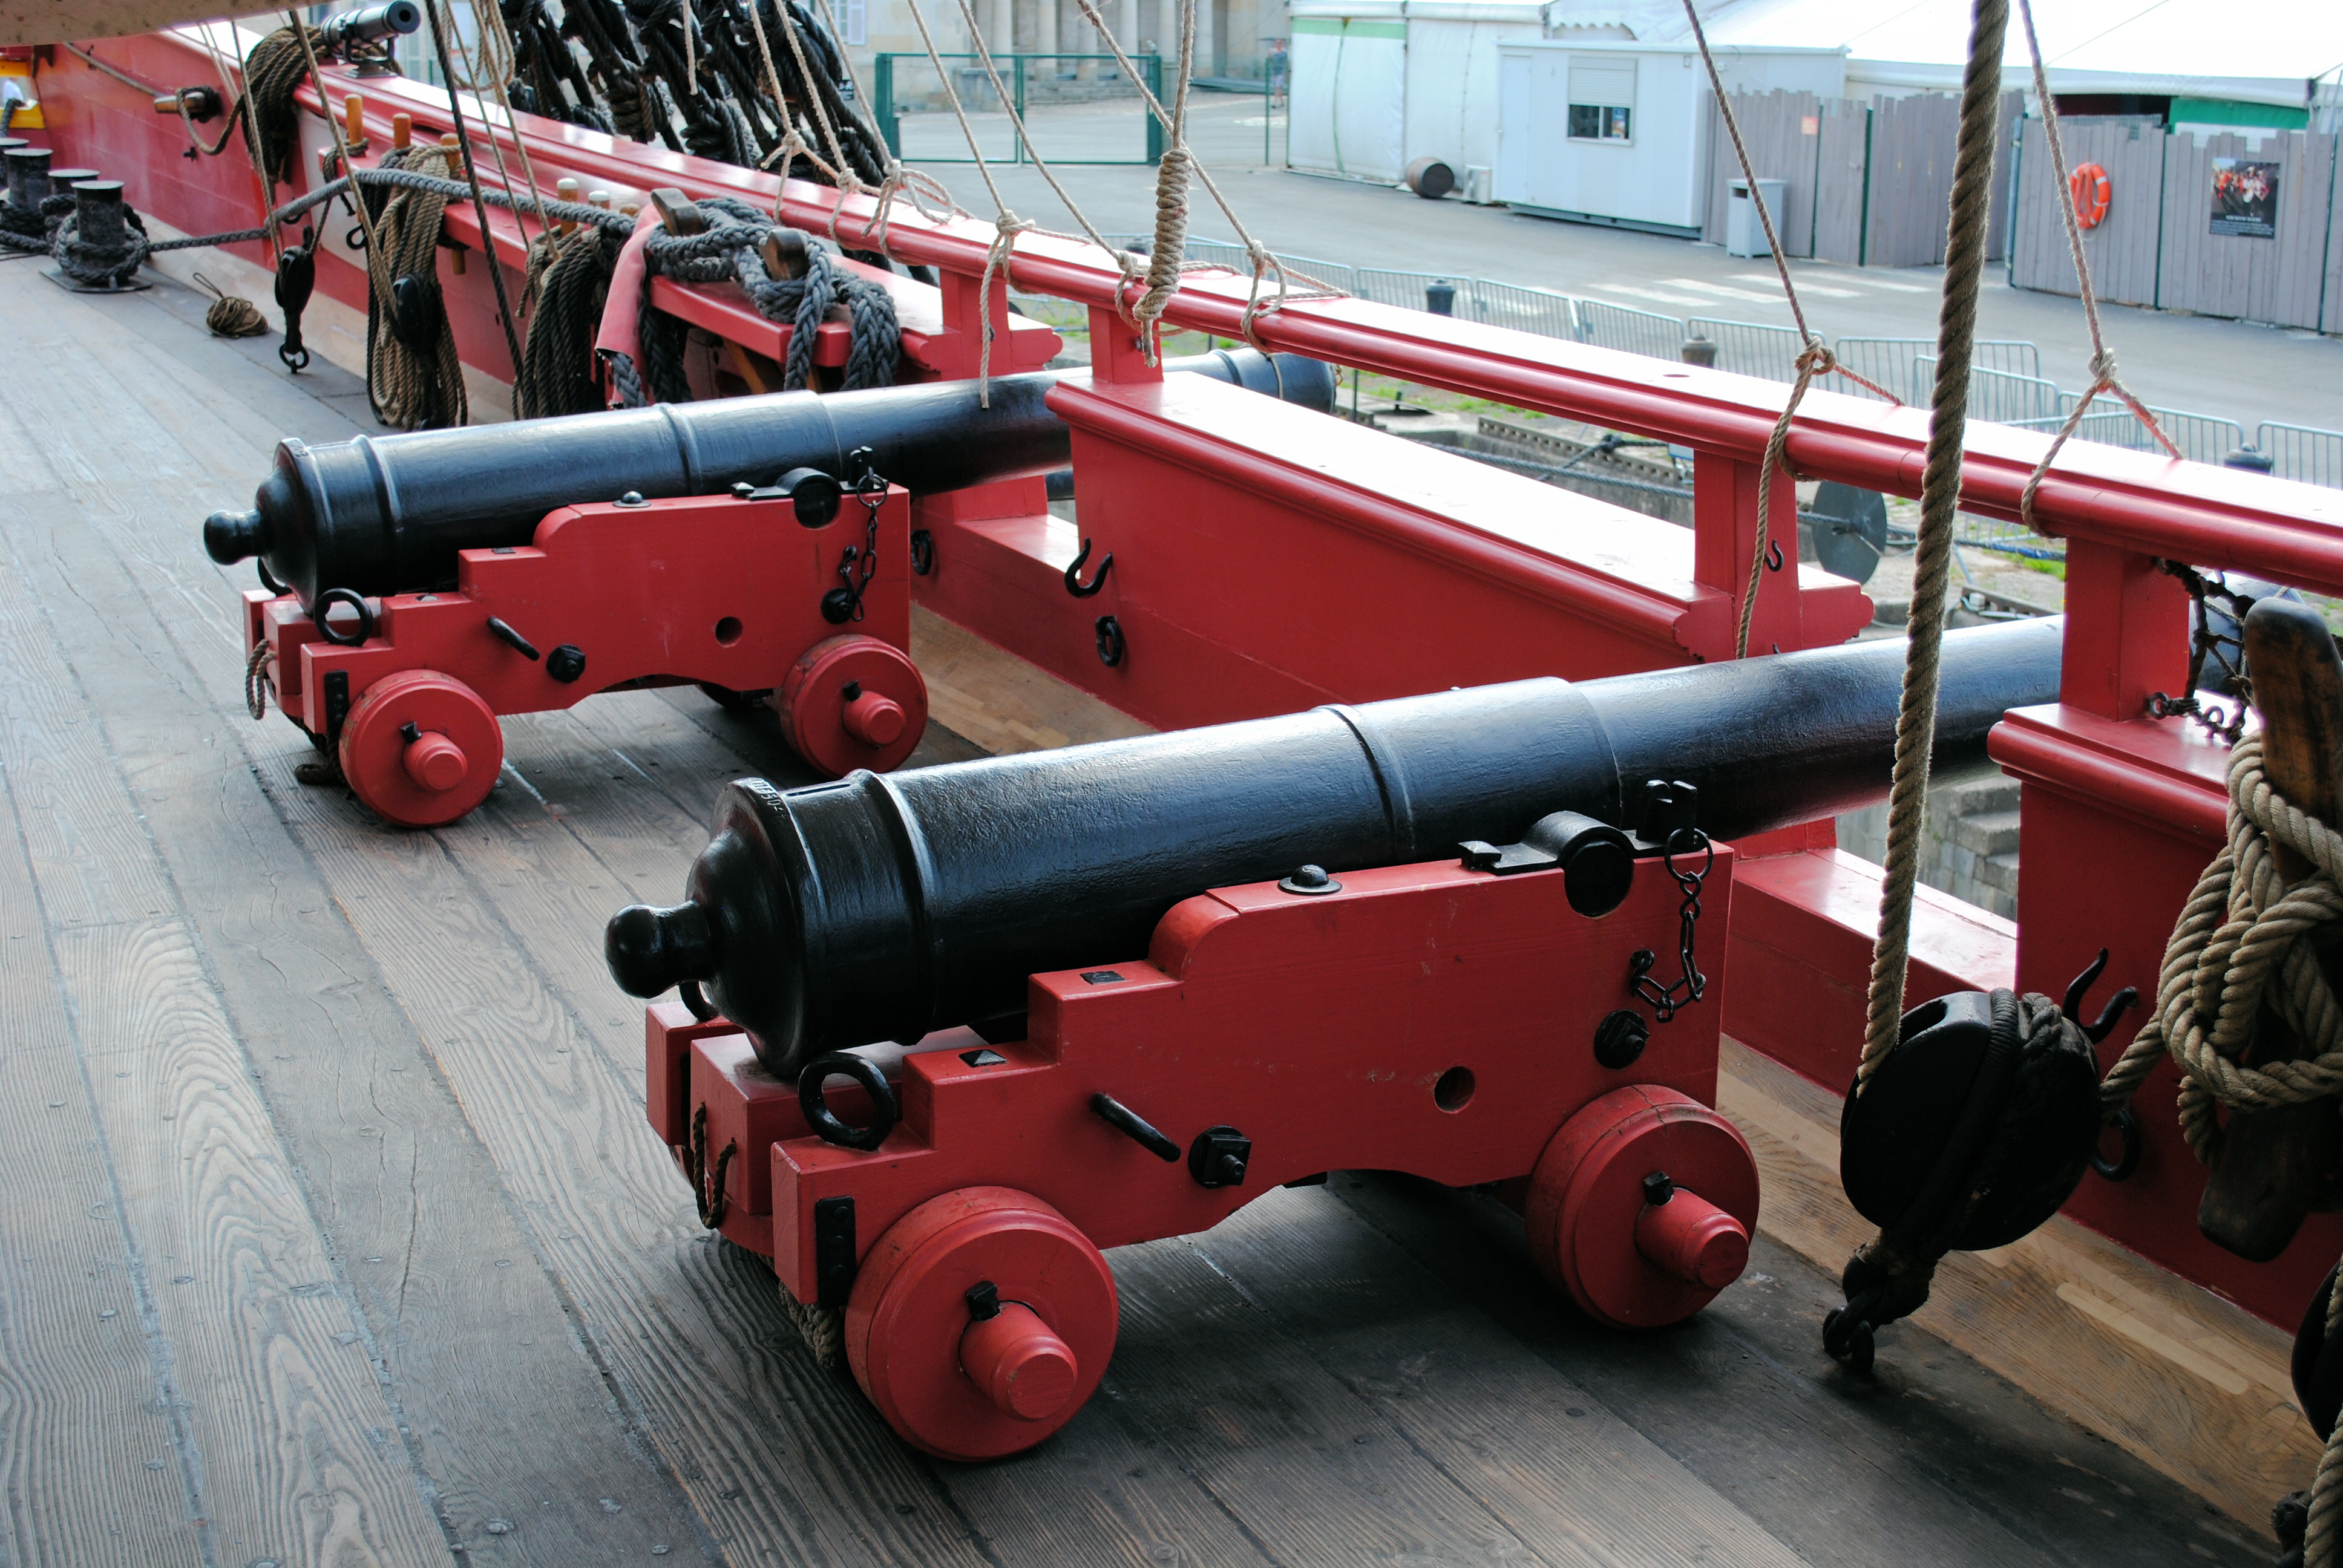 The Hermione's cannons